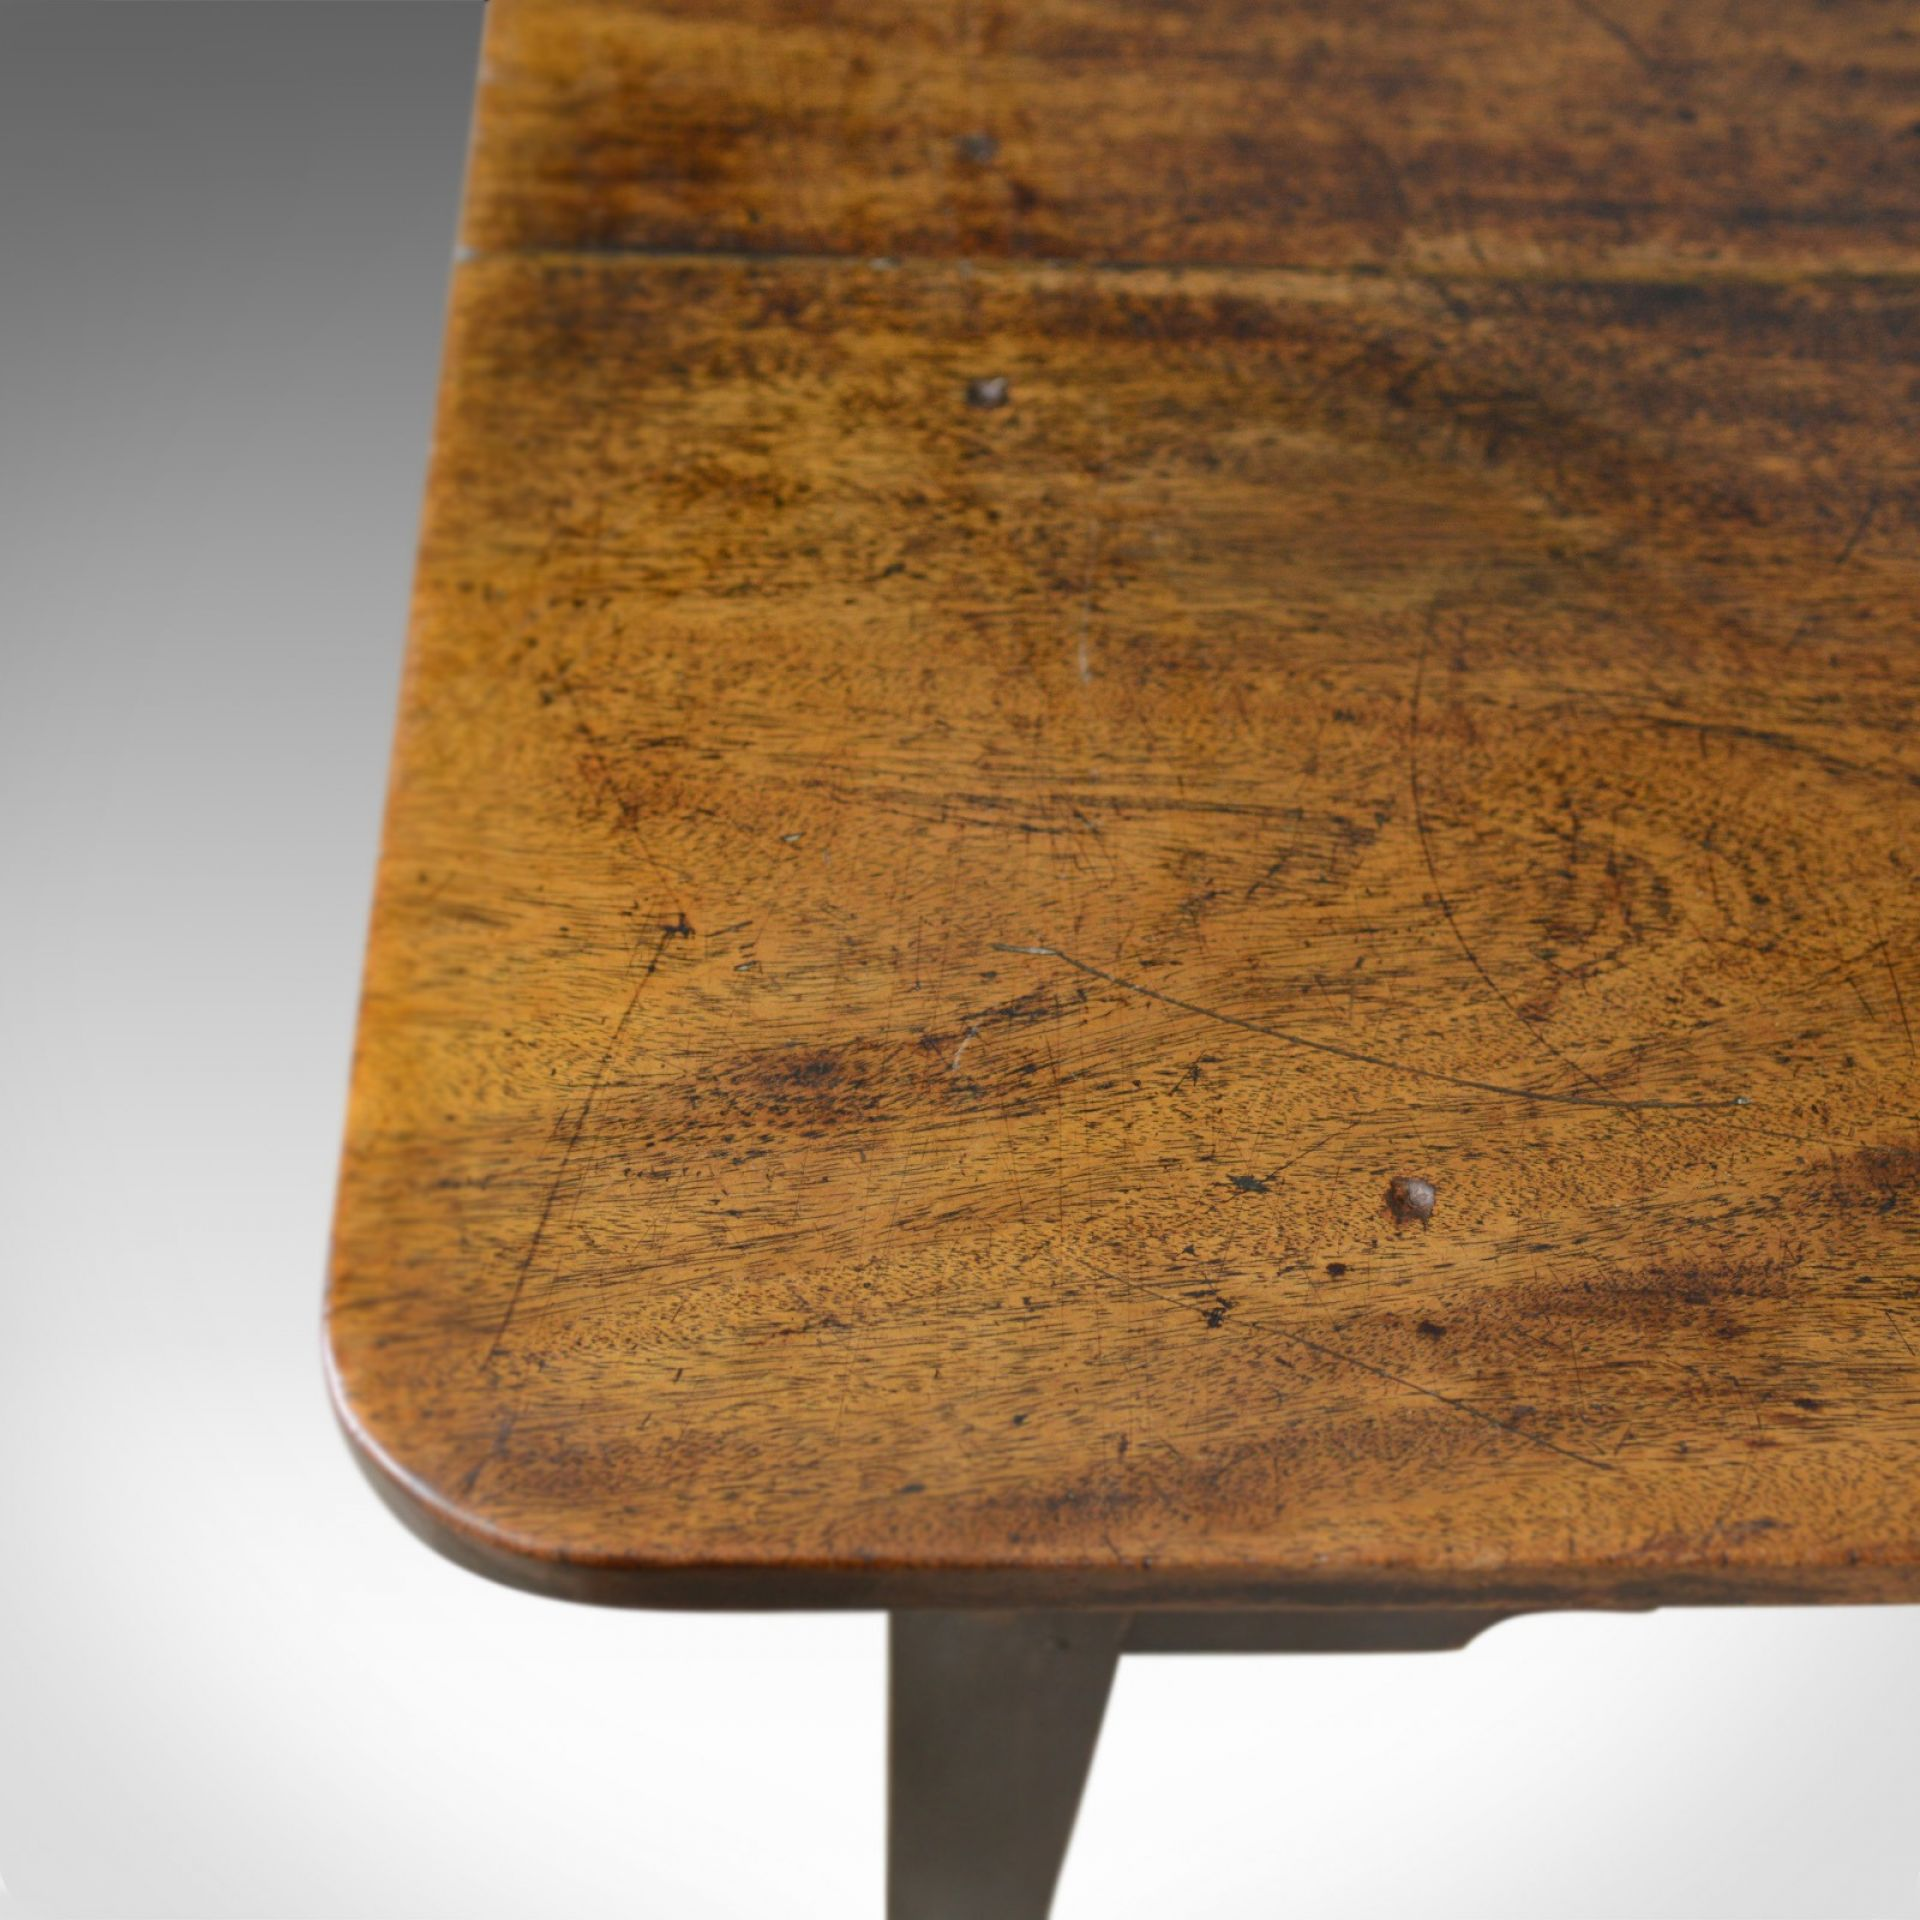 French Antique Patisserie Table, Mahogany, Country Kitchen Dining Circa 1800